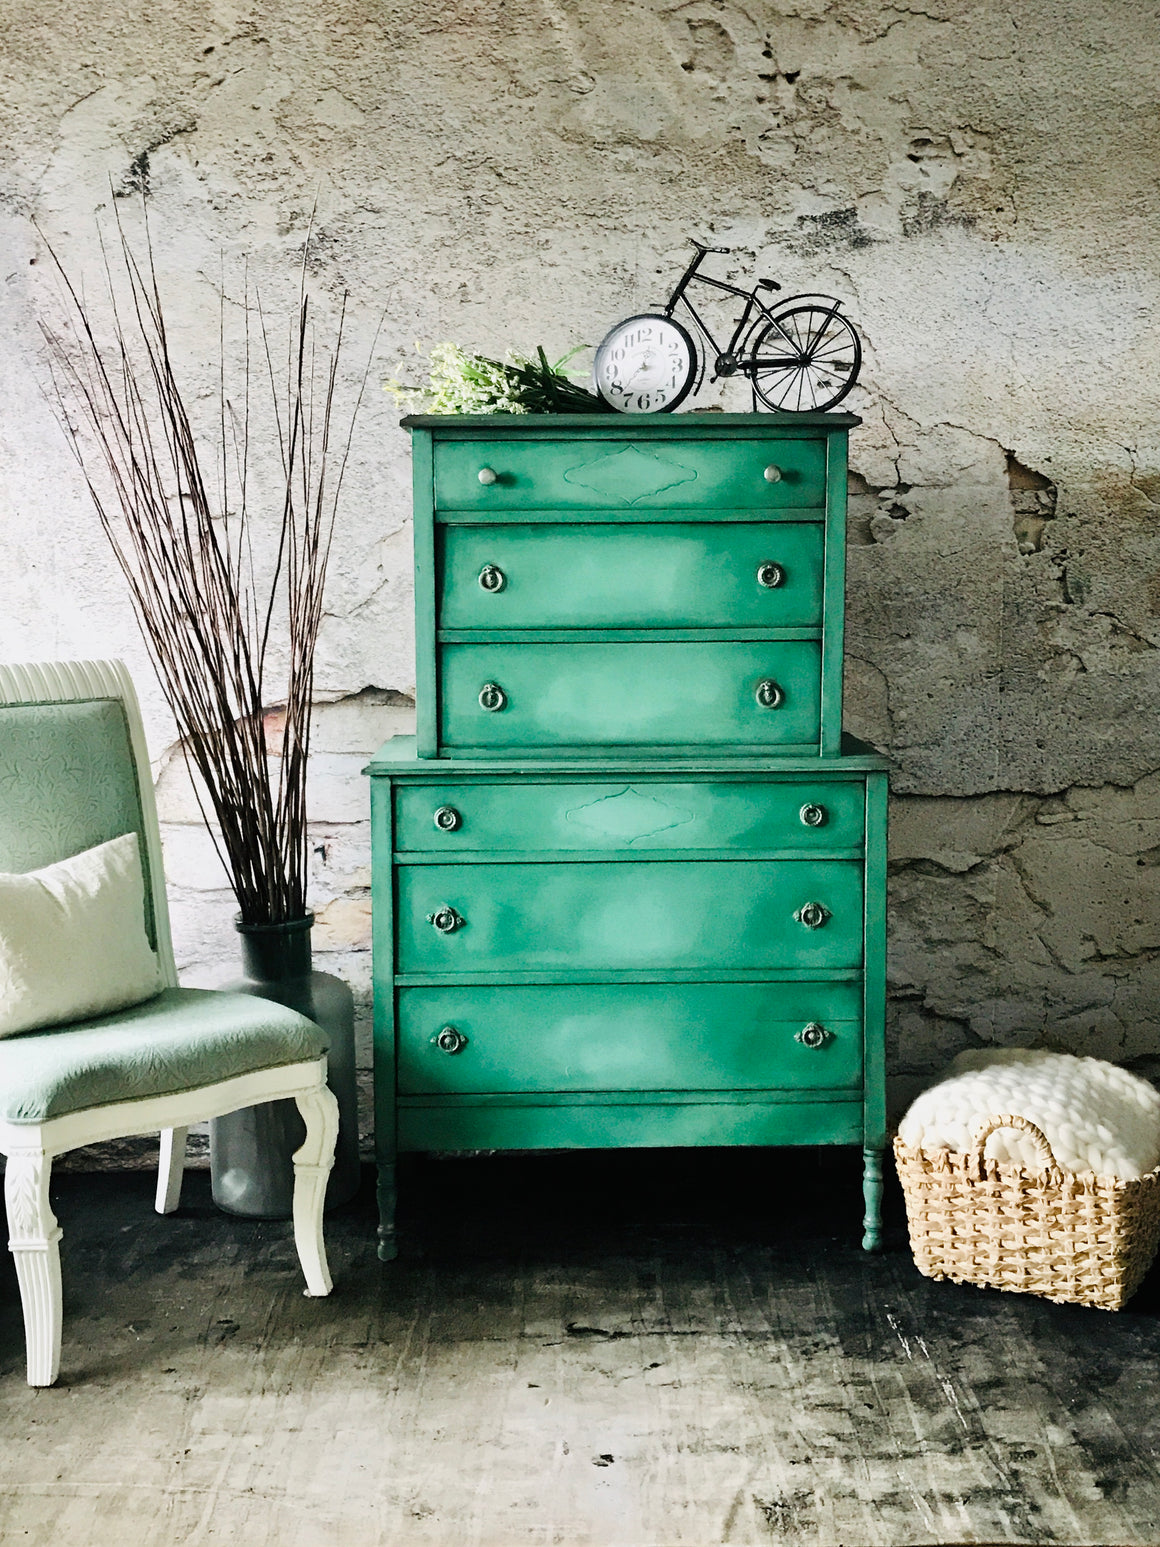 Reclaimed Heirloom's:  Super Tall Boy 6 Drawer Dresser